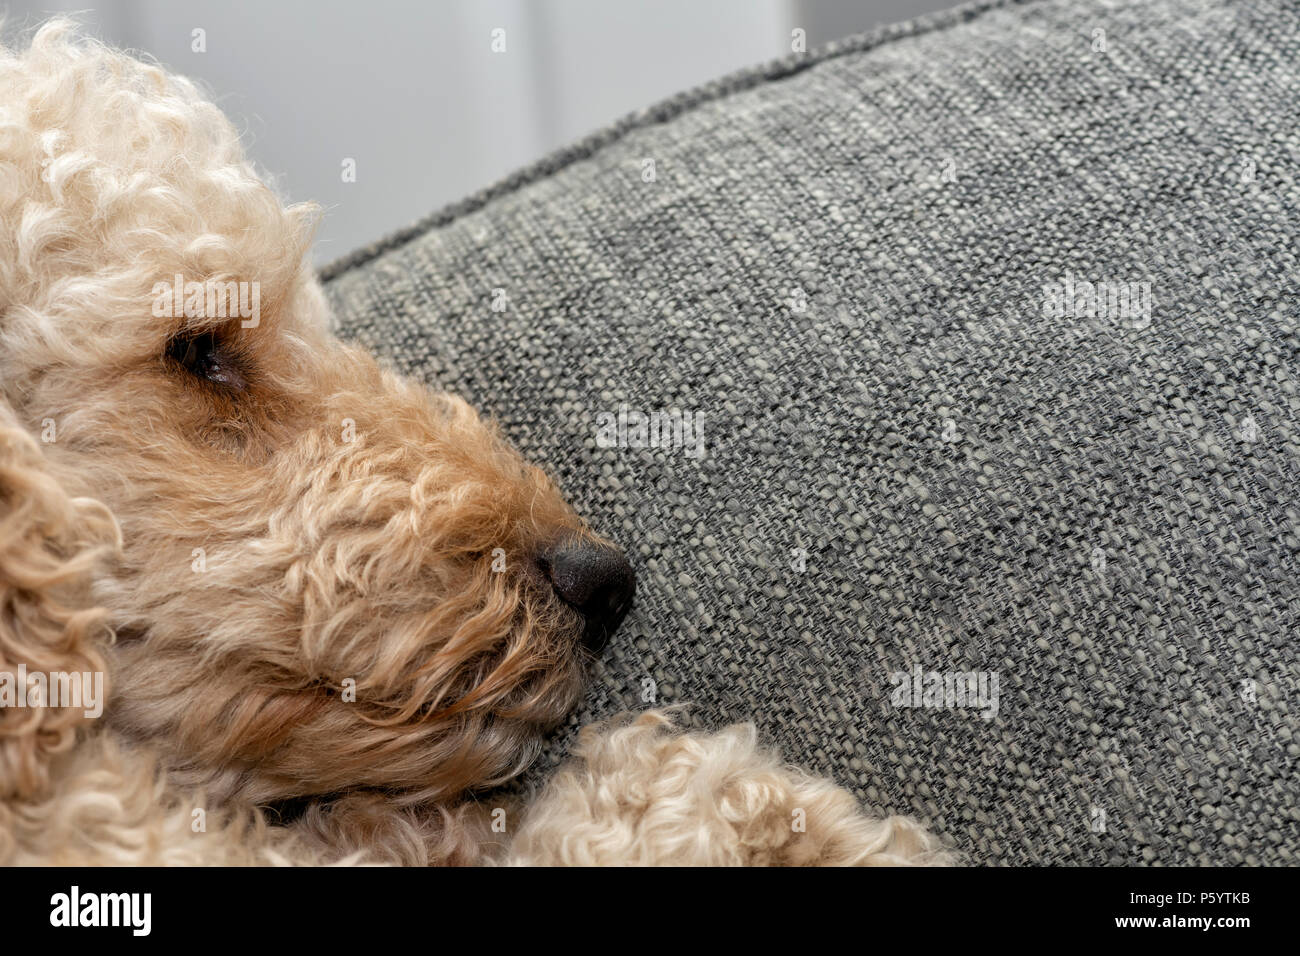 Beige coloured dog asleep with it's head on a cushion - Stock Image